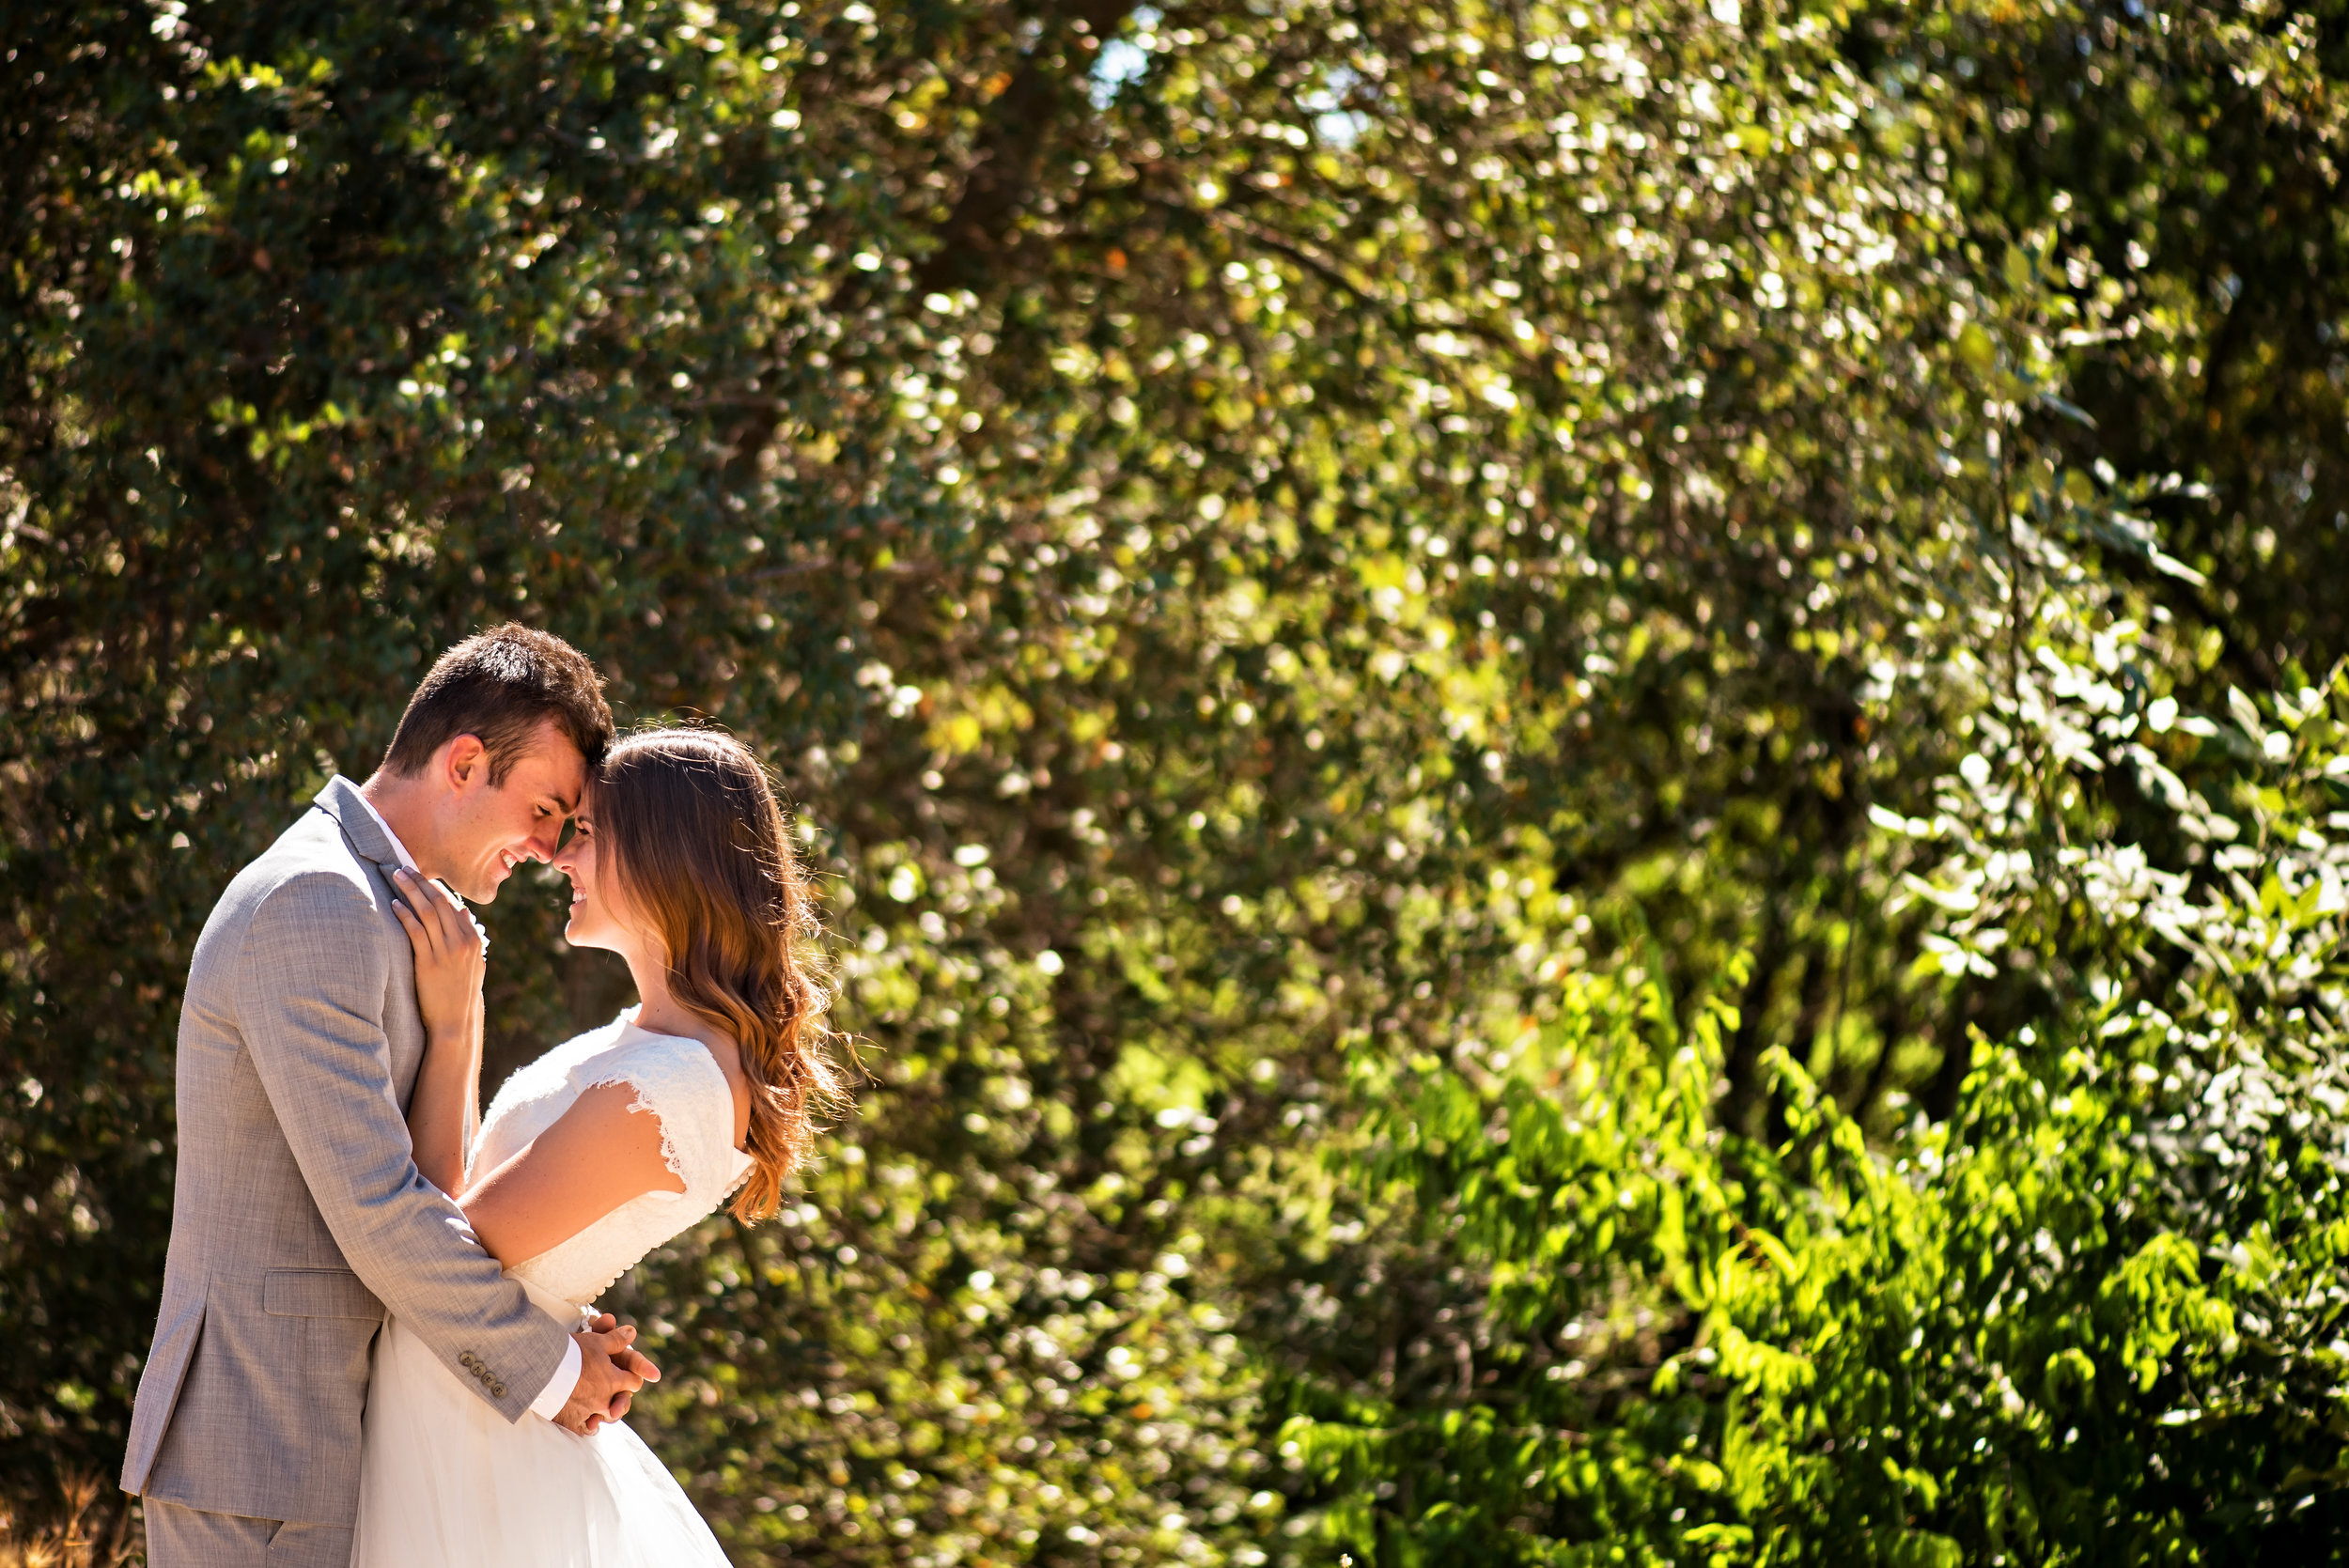 meghan-jonah-028-haggin-oaks-golf-course-sacramento-engagement-wedding-photographer-katherine-nicole-photography.JPG